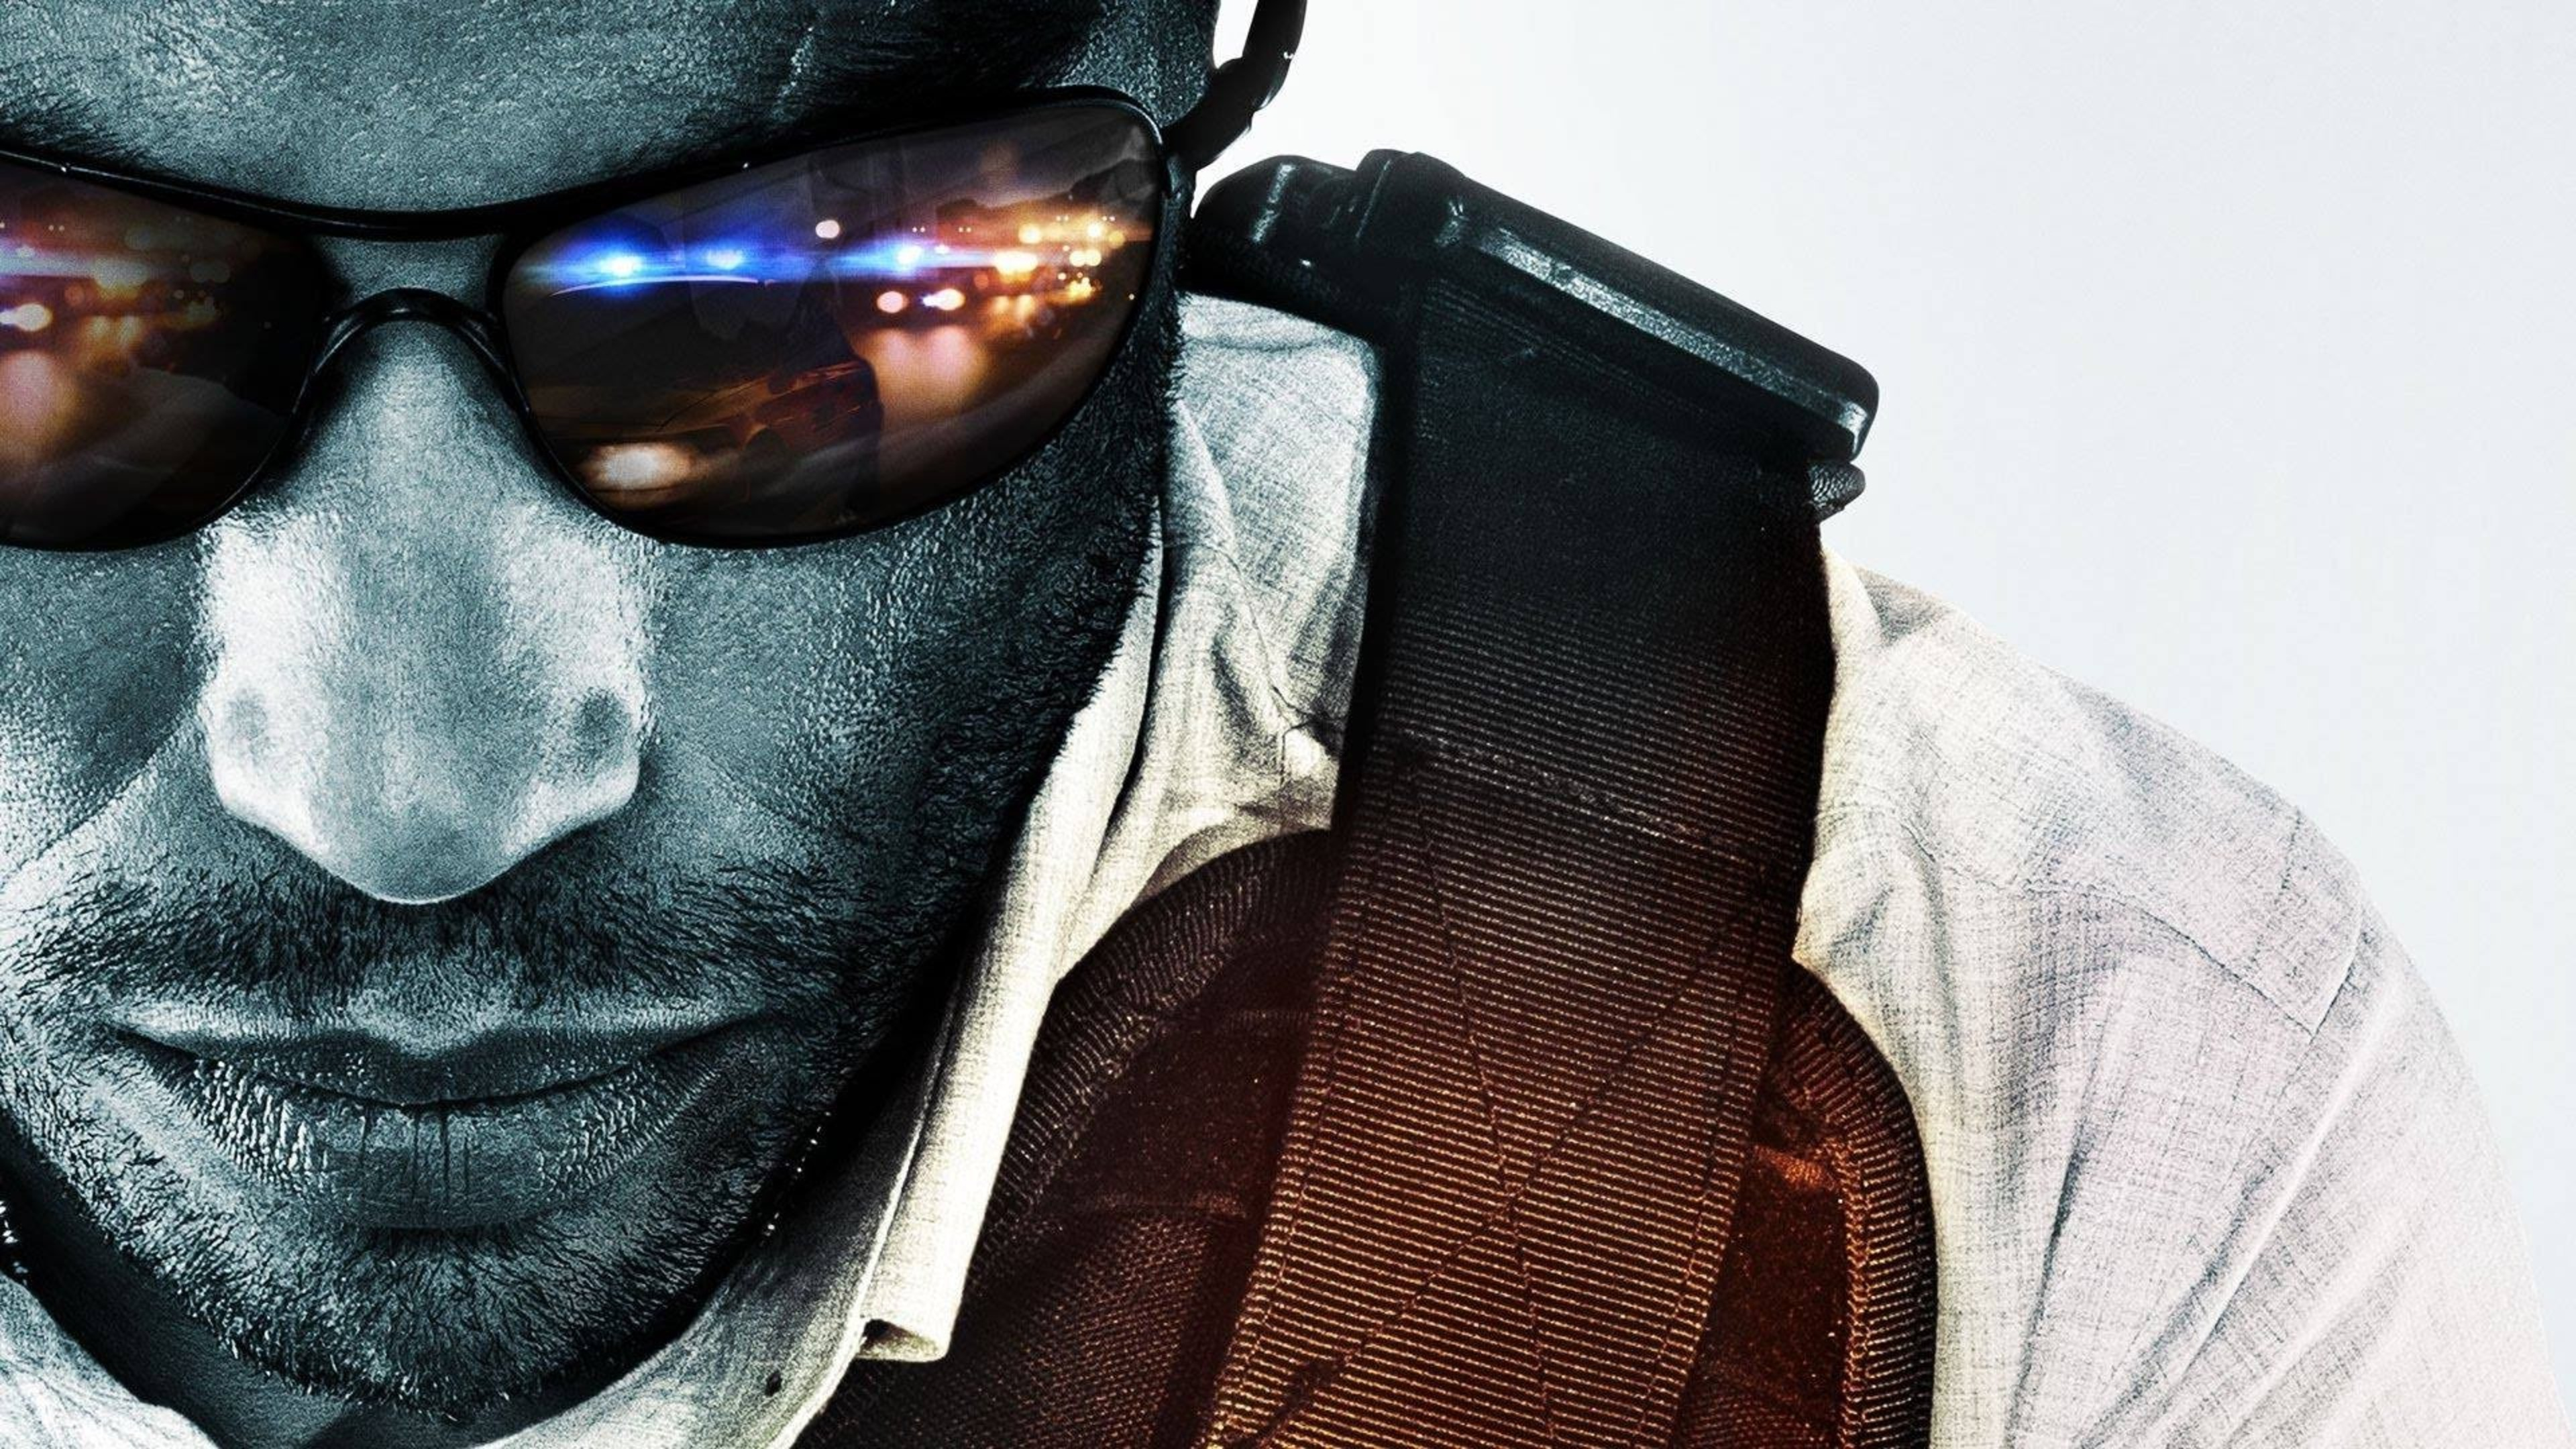 Battlefield Hardline HD Games 4k Wallpapers Images Backgrounds